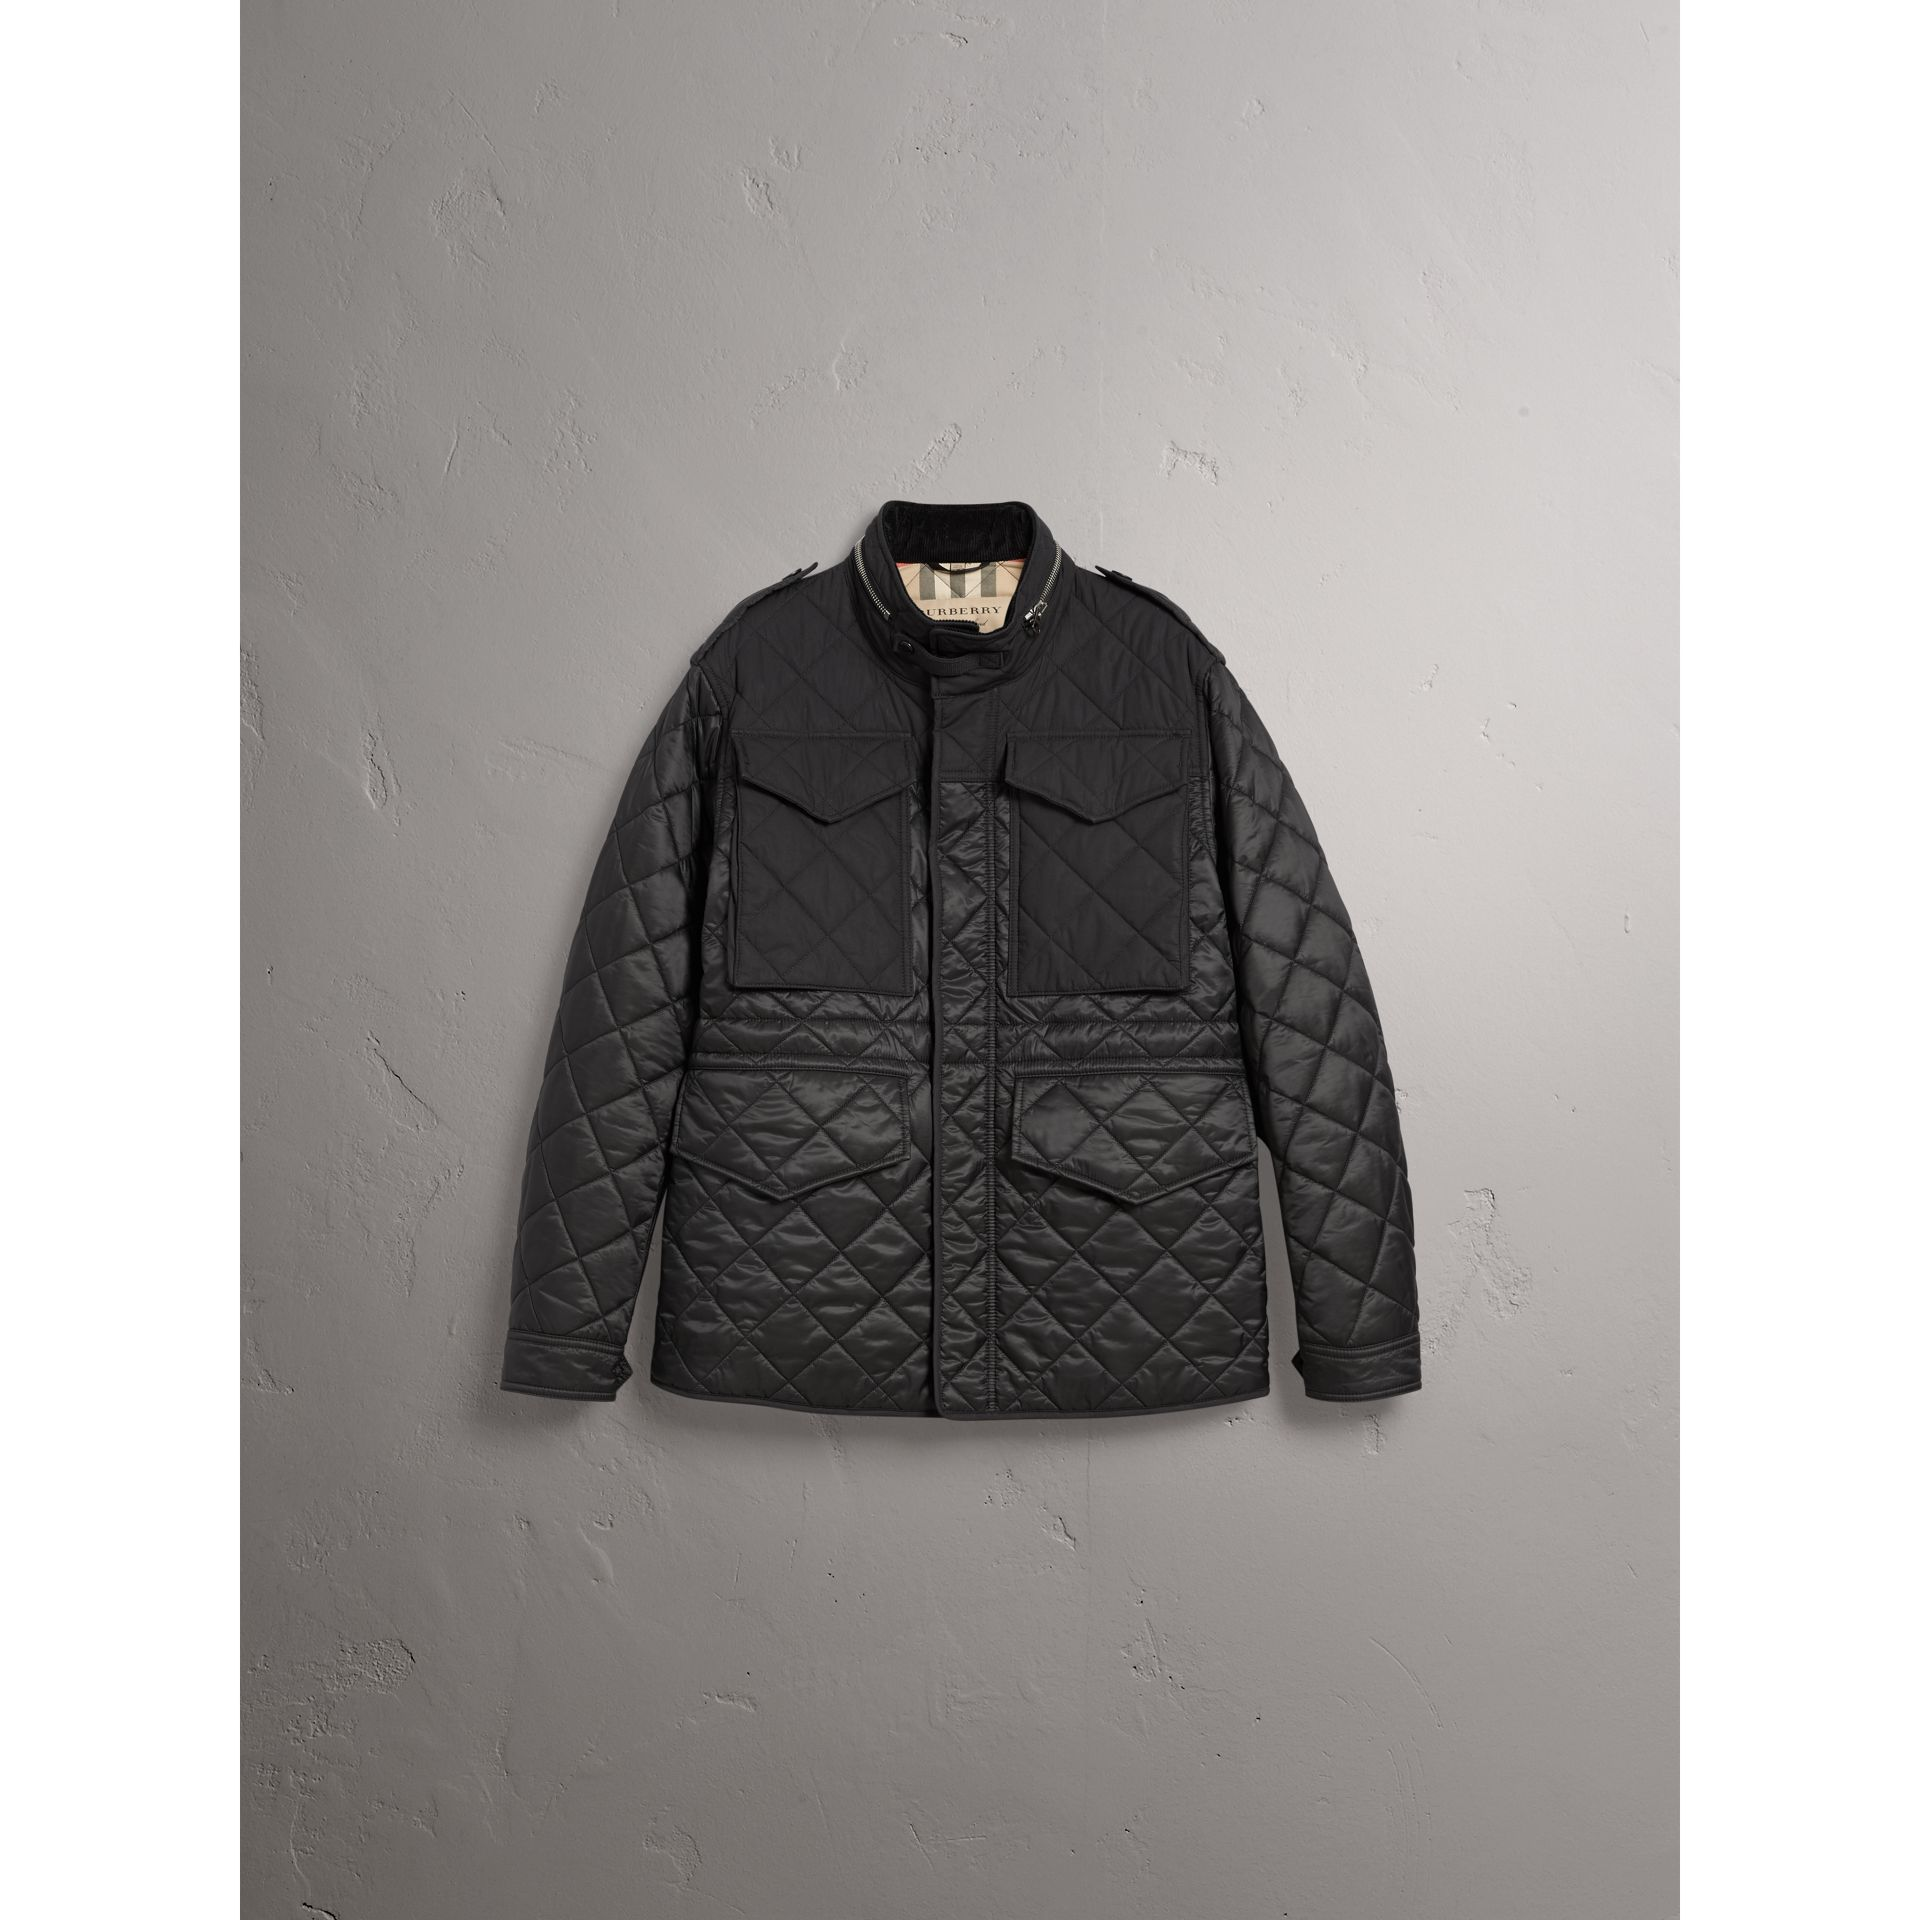 Packaway Hood Diamond Quilted Field Jacket in Black - Men | Burberry United Kingdom - gallery image 4